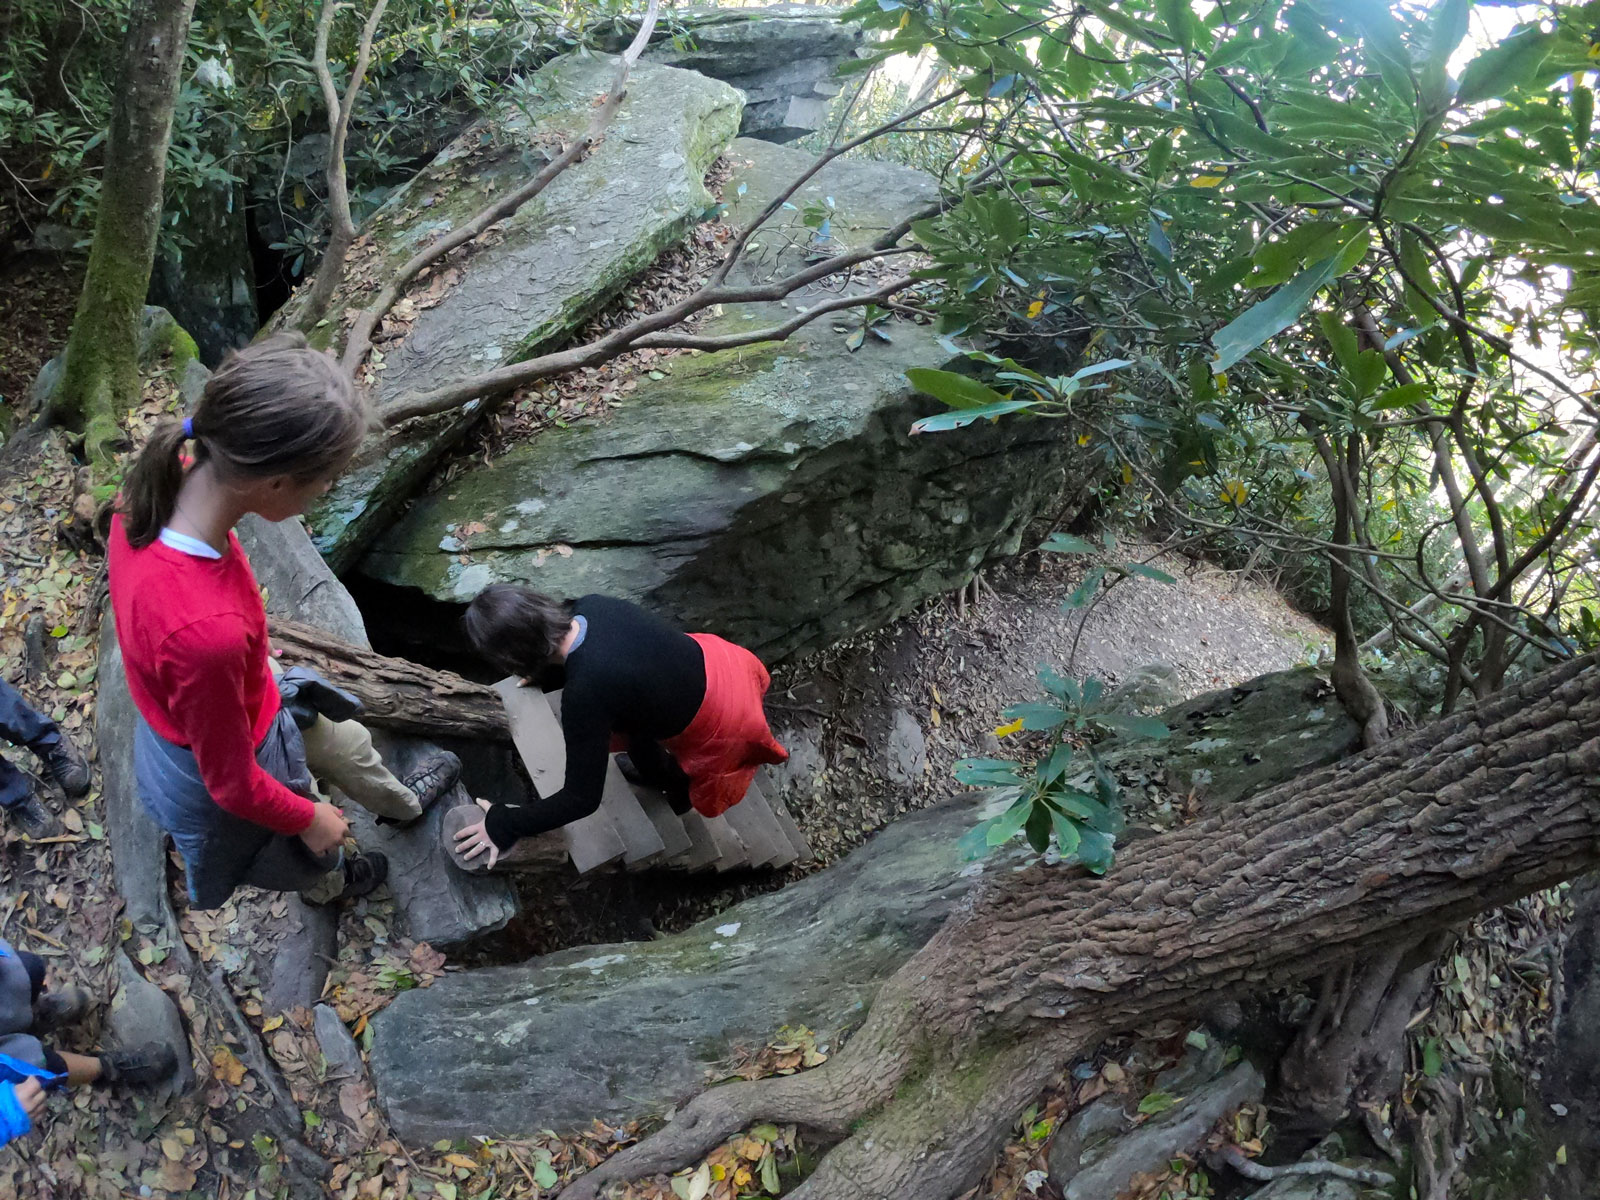 Photograph of daughter and mother climbing down the steep ladder between the boulders on the Boone Fork Trail near Julian Price Campground on the Blue Ridge Parkway, NC